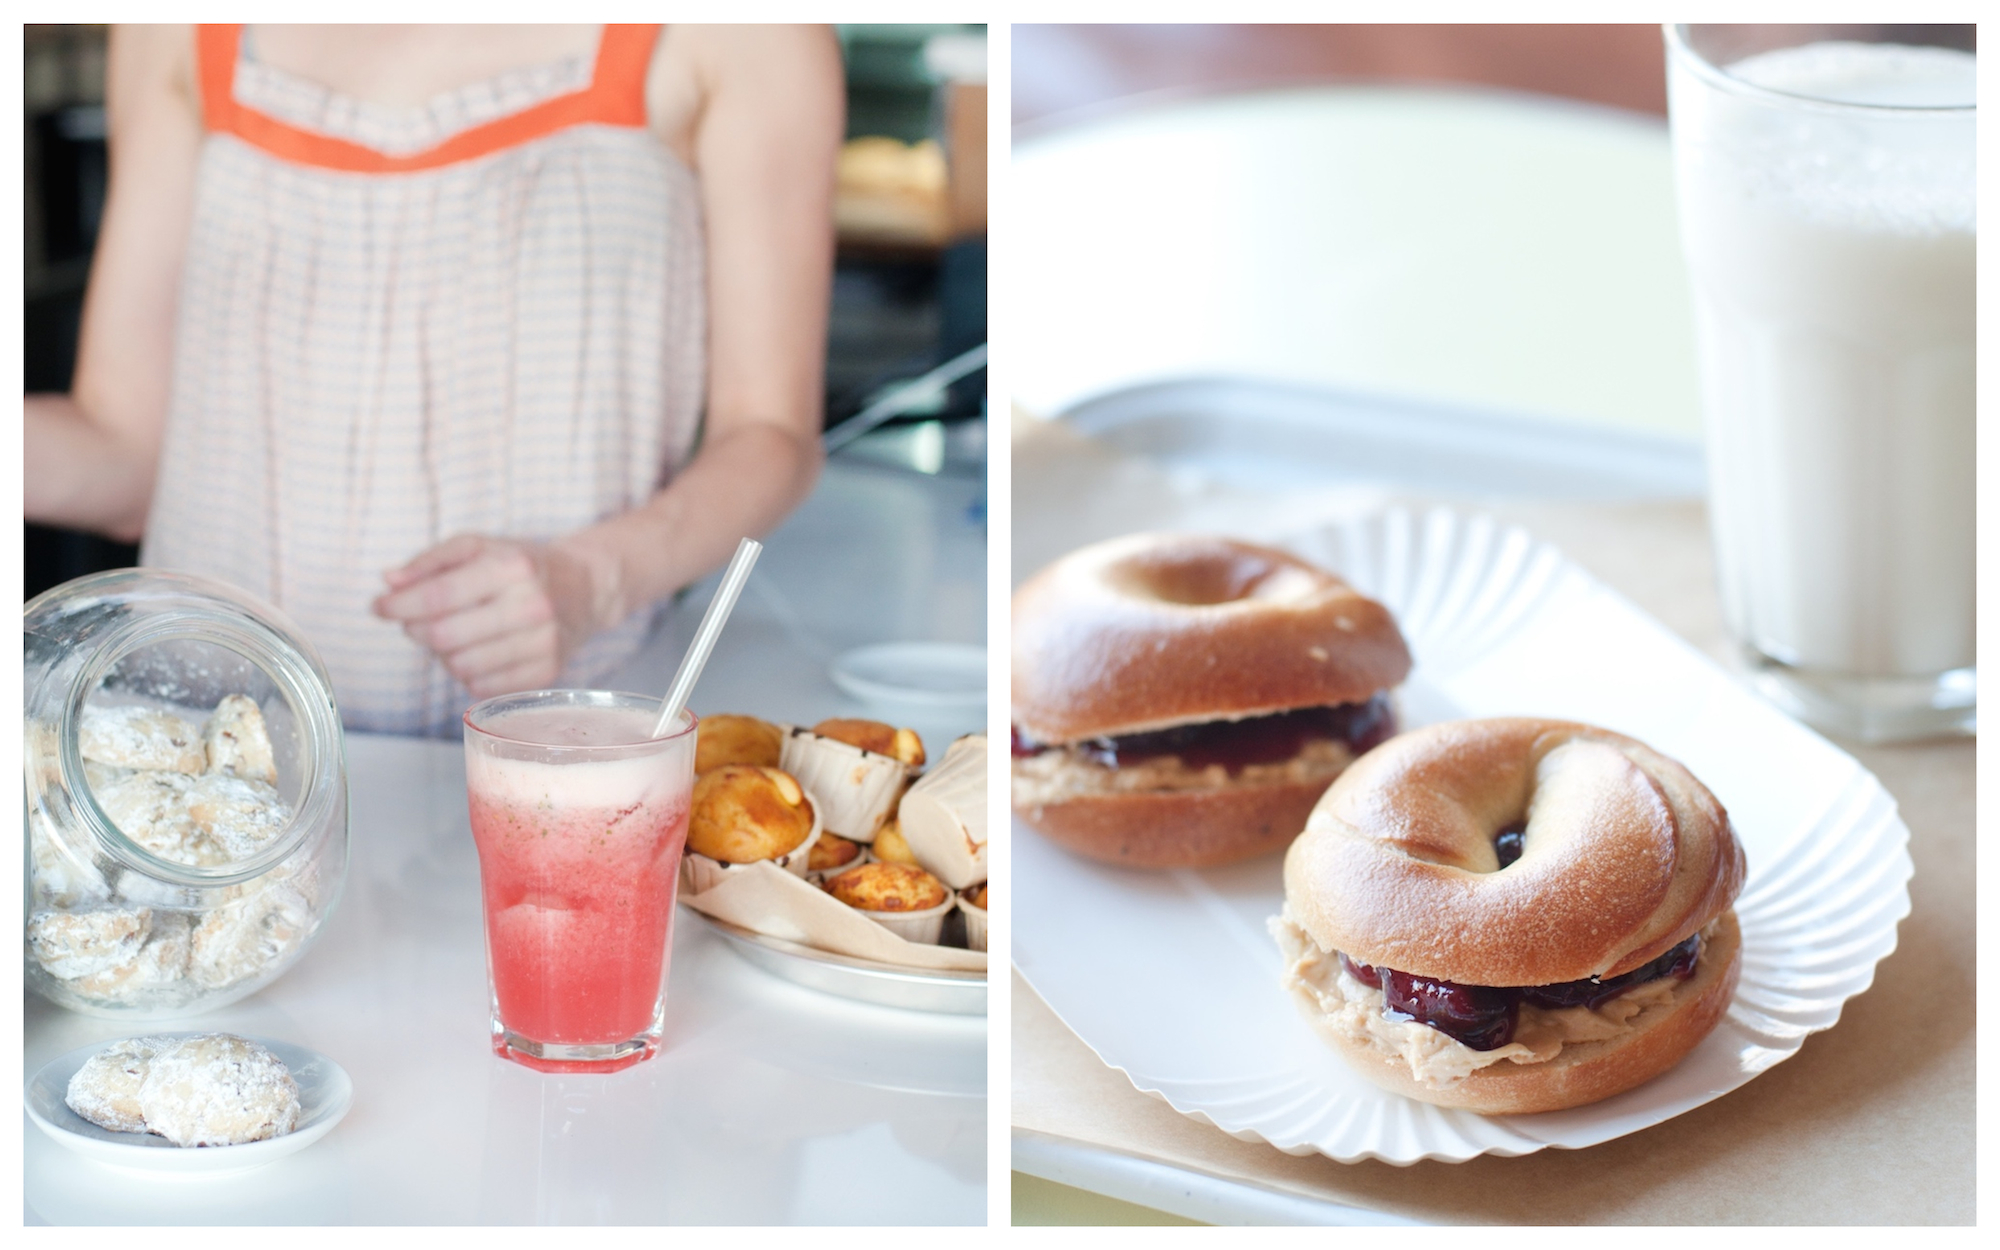 HiP Paris Blog rounds up the top brunch spots in Paris like Bob's Bakeshop for its fresh fruit juices and cakes (left) and the delicious breakfast bagels (right).